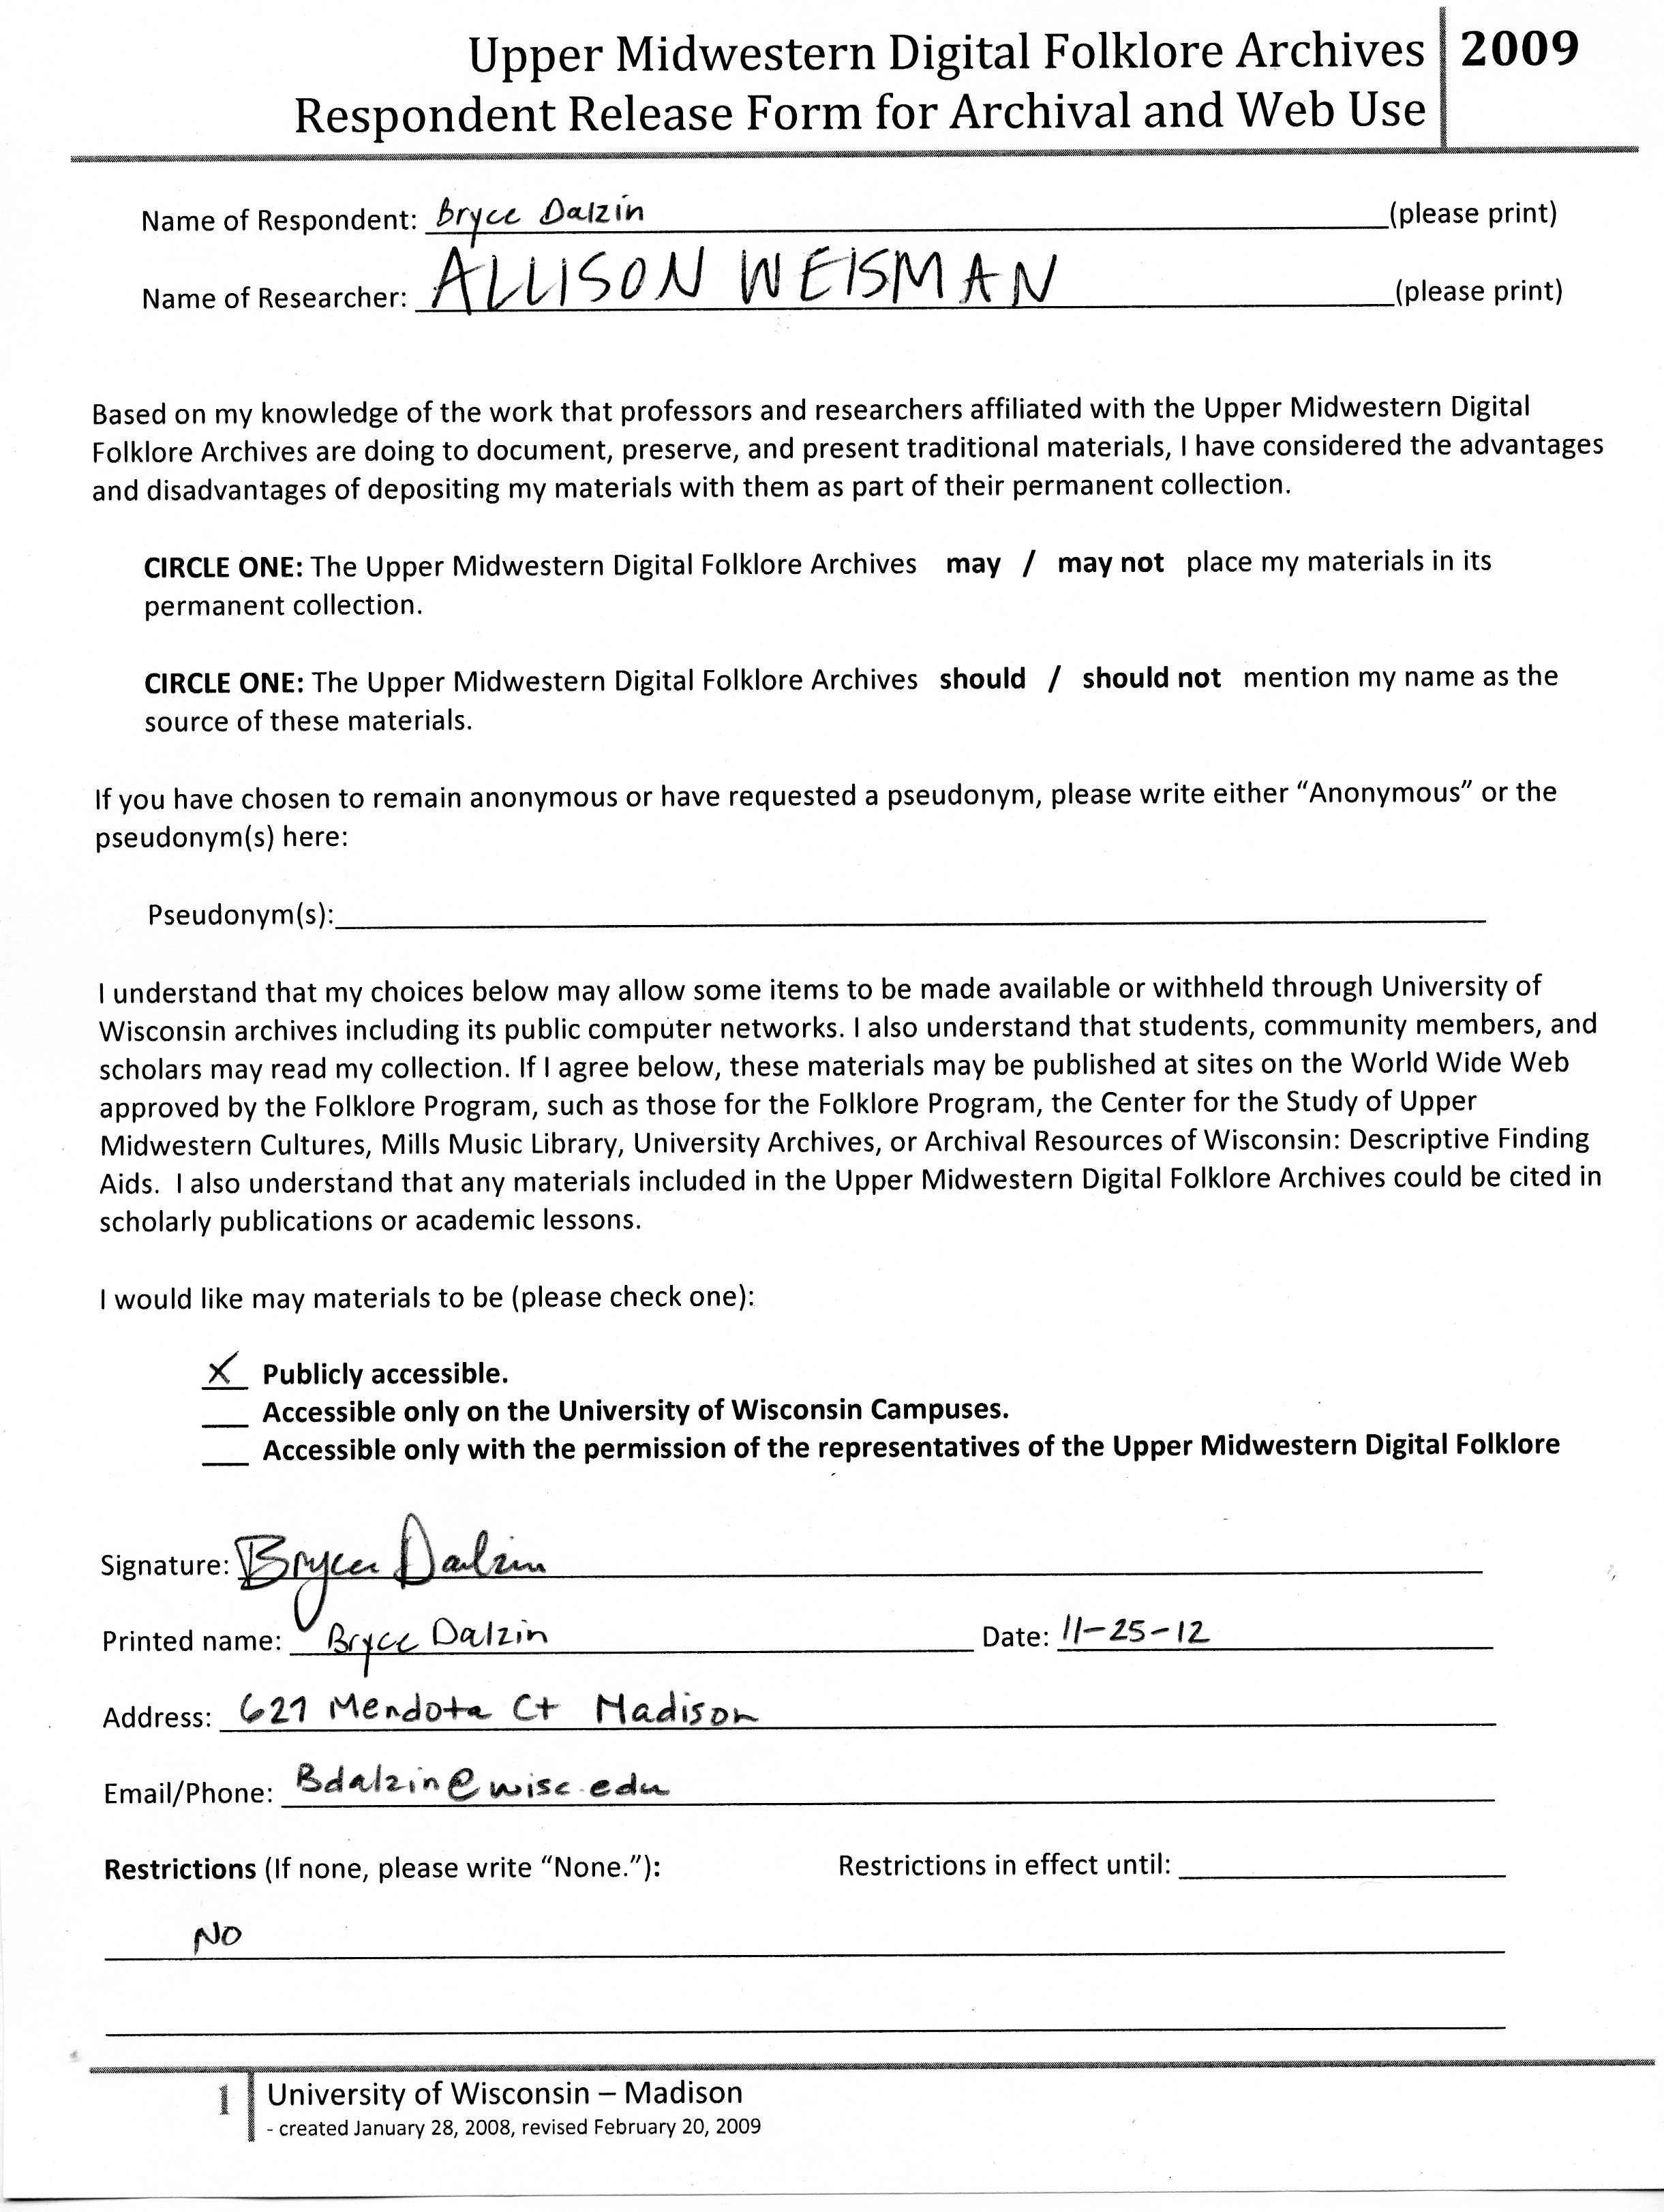 informed consent form interview research paper